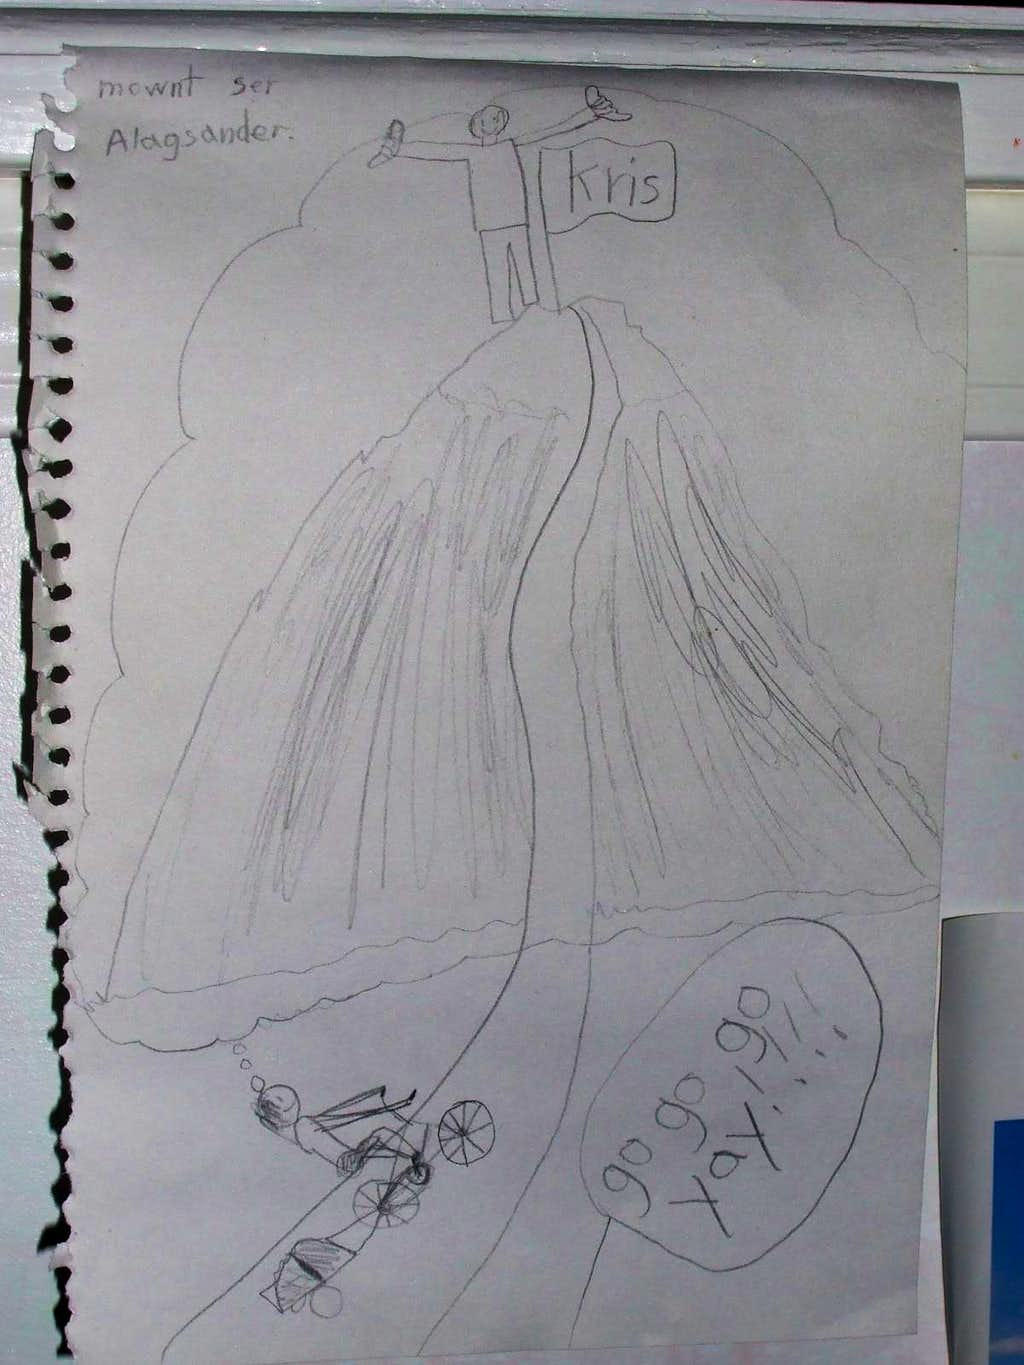 Children made drawings for me.